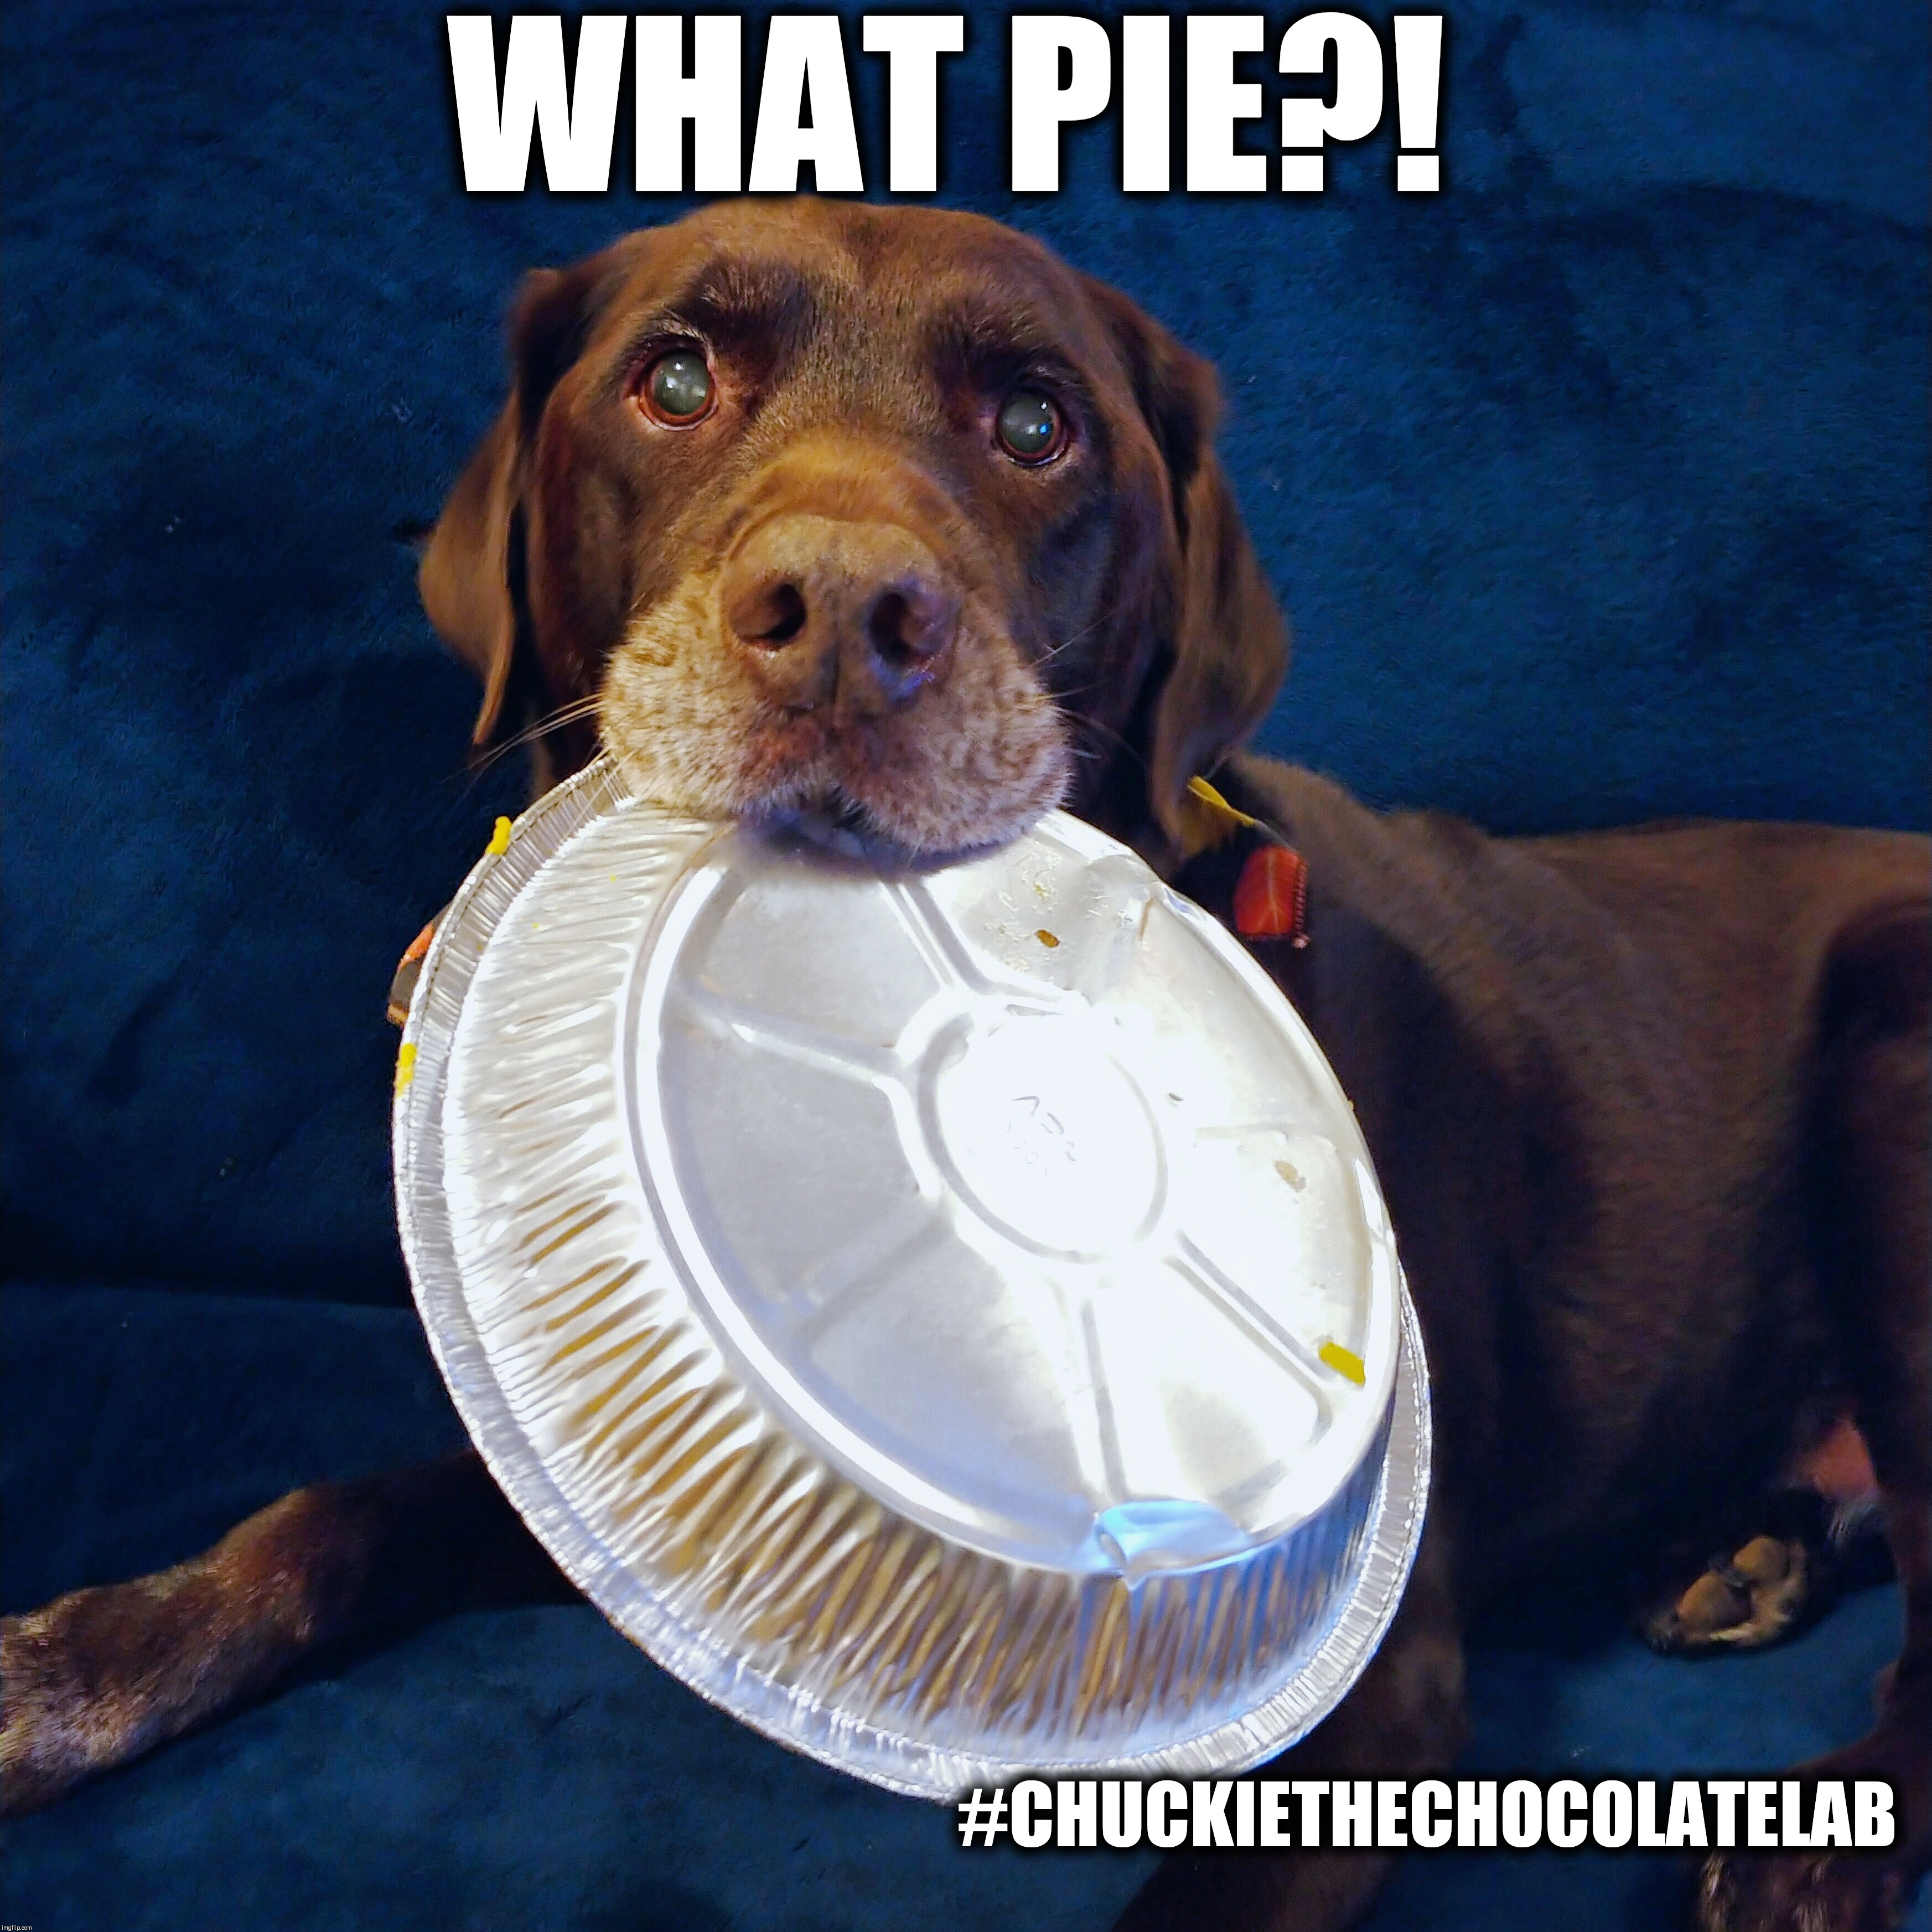 What pie?! | WHAT PIE?! #CHUCKIETHECHOCOLATELAB | image tagged in chuckie the chocolate lab,dogs,funny,pie,dessert,holidays | made w/ Imgflip meme maker